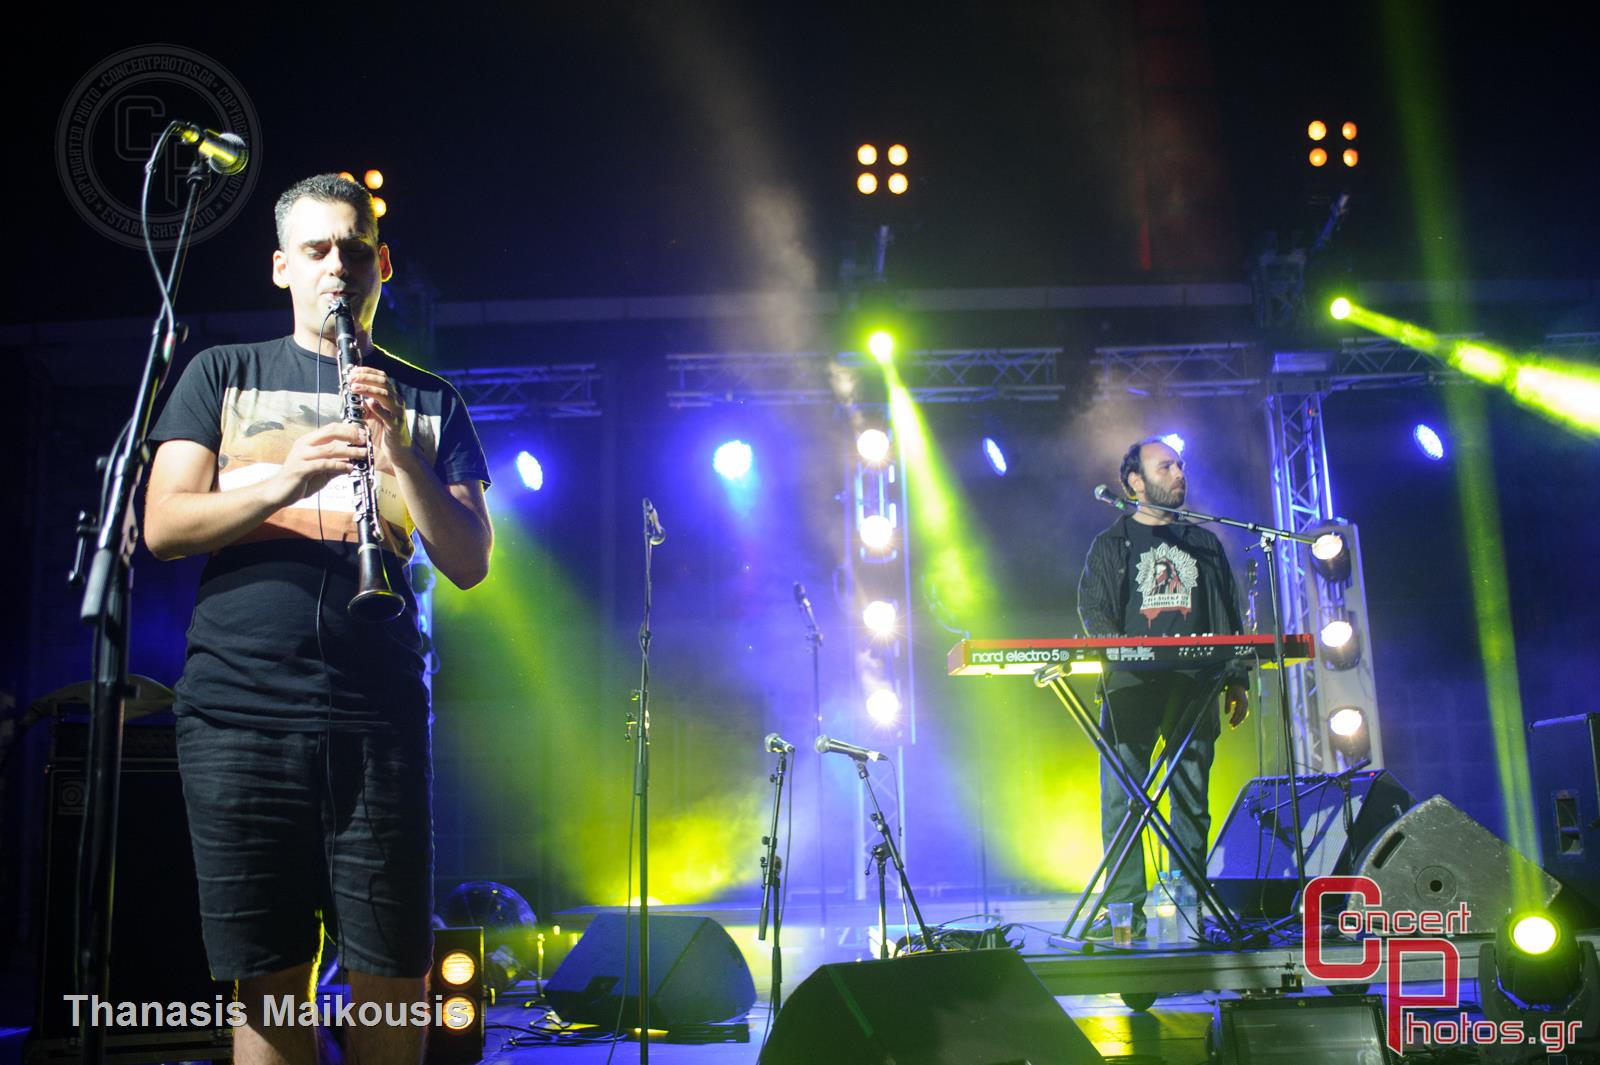 VIC-VIC-Technopolis photographer: Thanasis Maikousis - concertphotos_20150925_21_48_56